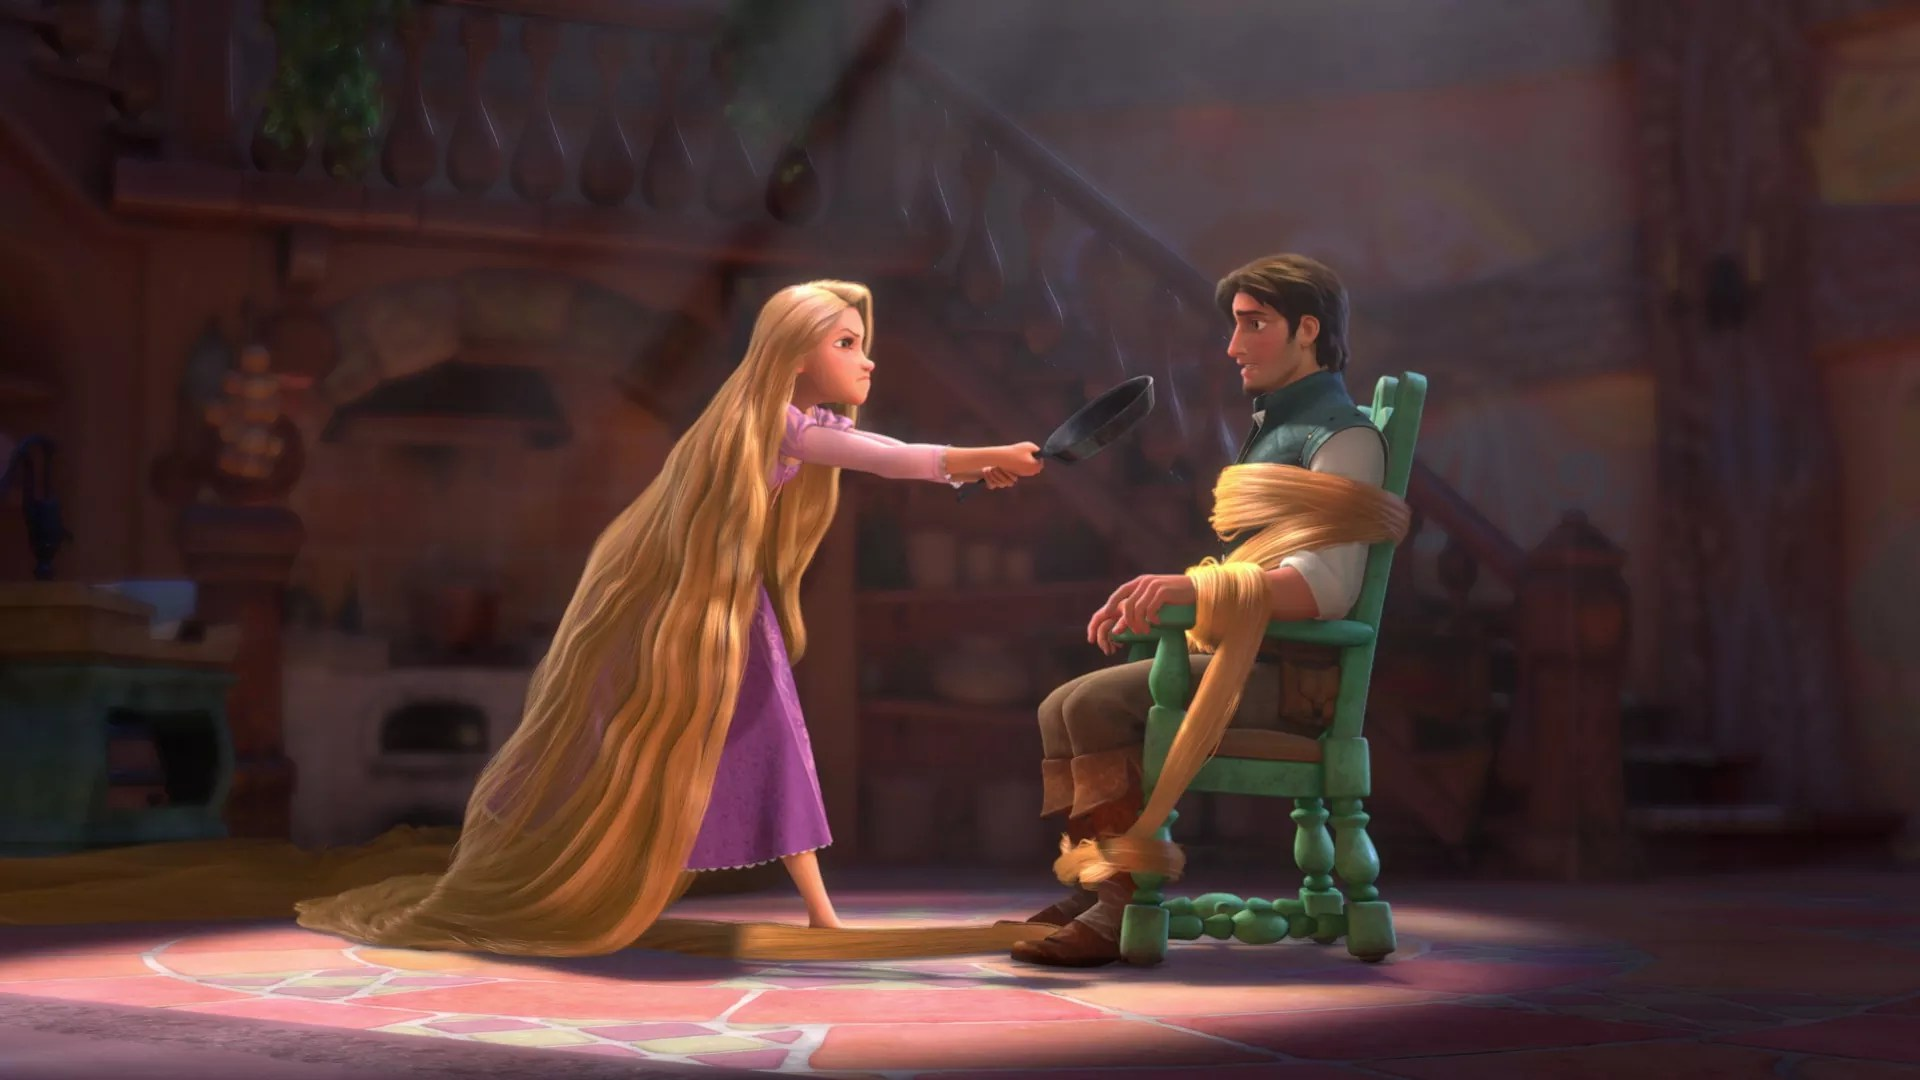 Olaf Frozen Wallpaper Quotes Tangled Vs Frozen Which Is The Better Movie Rotoscopers